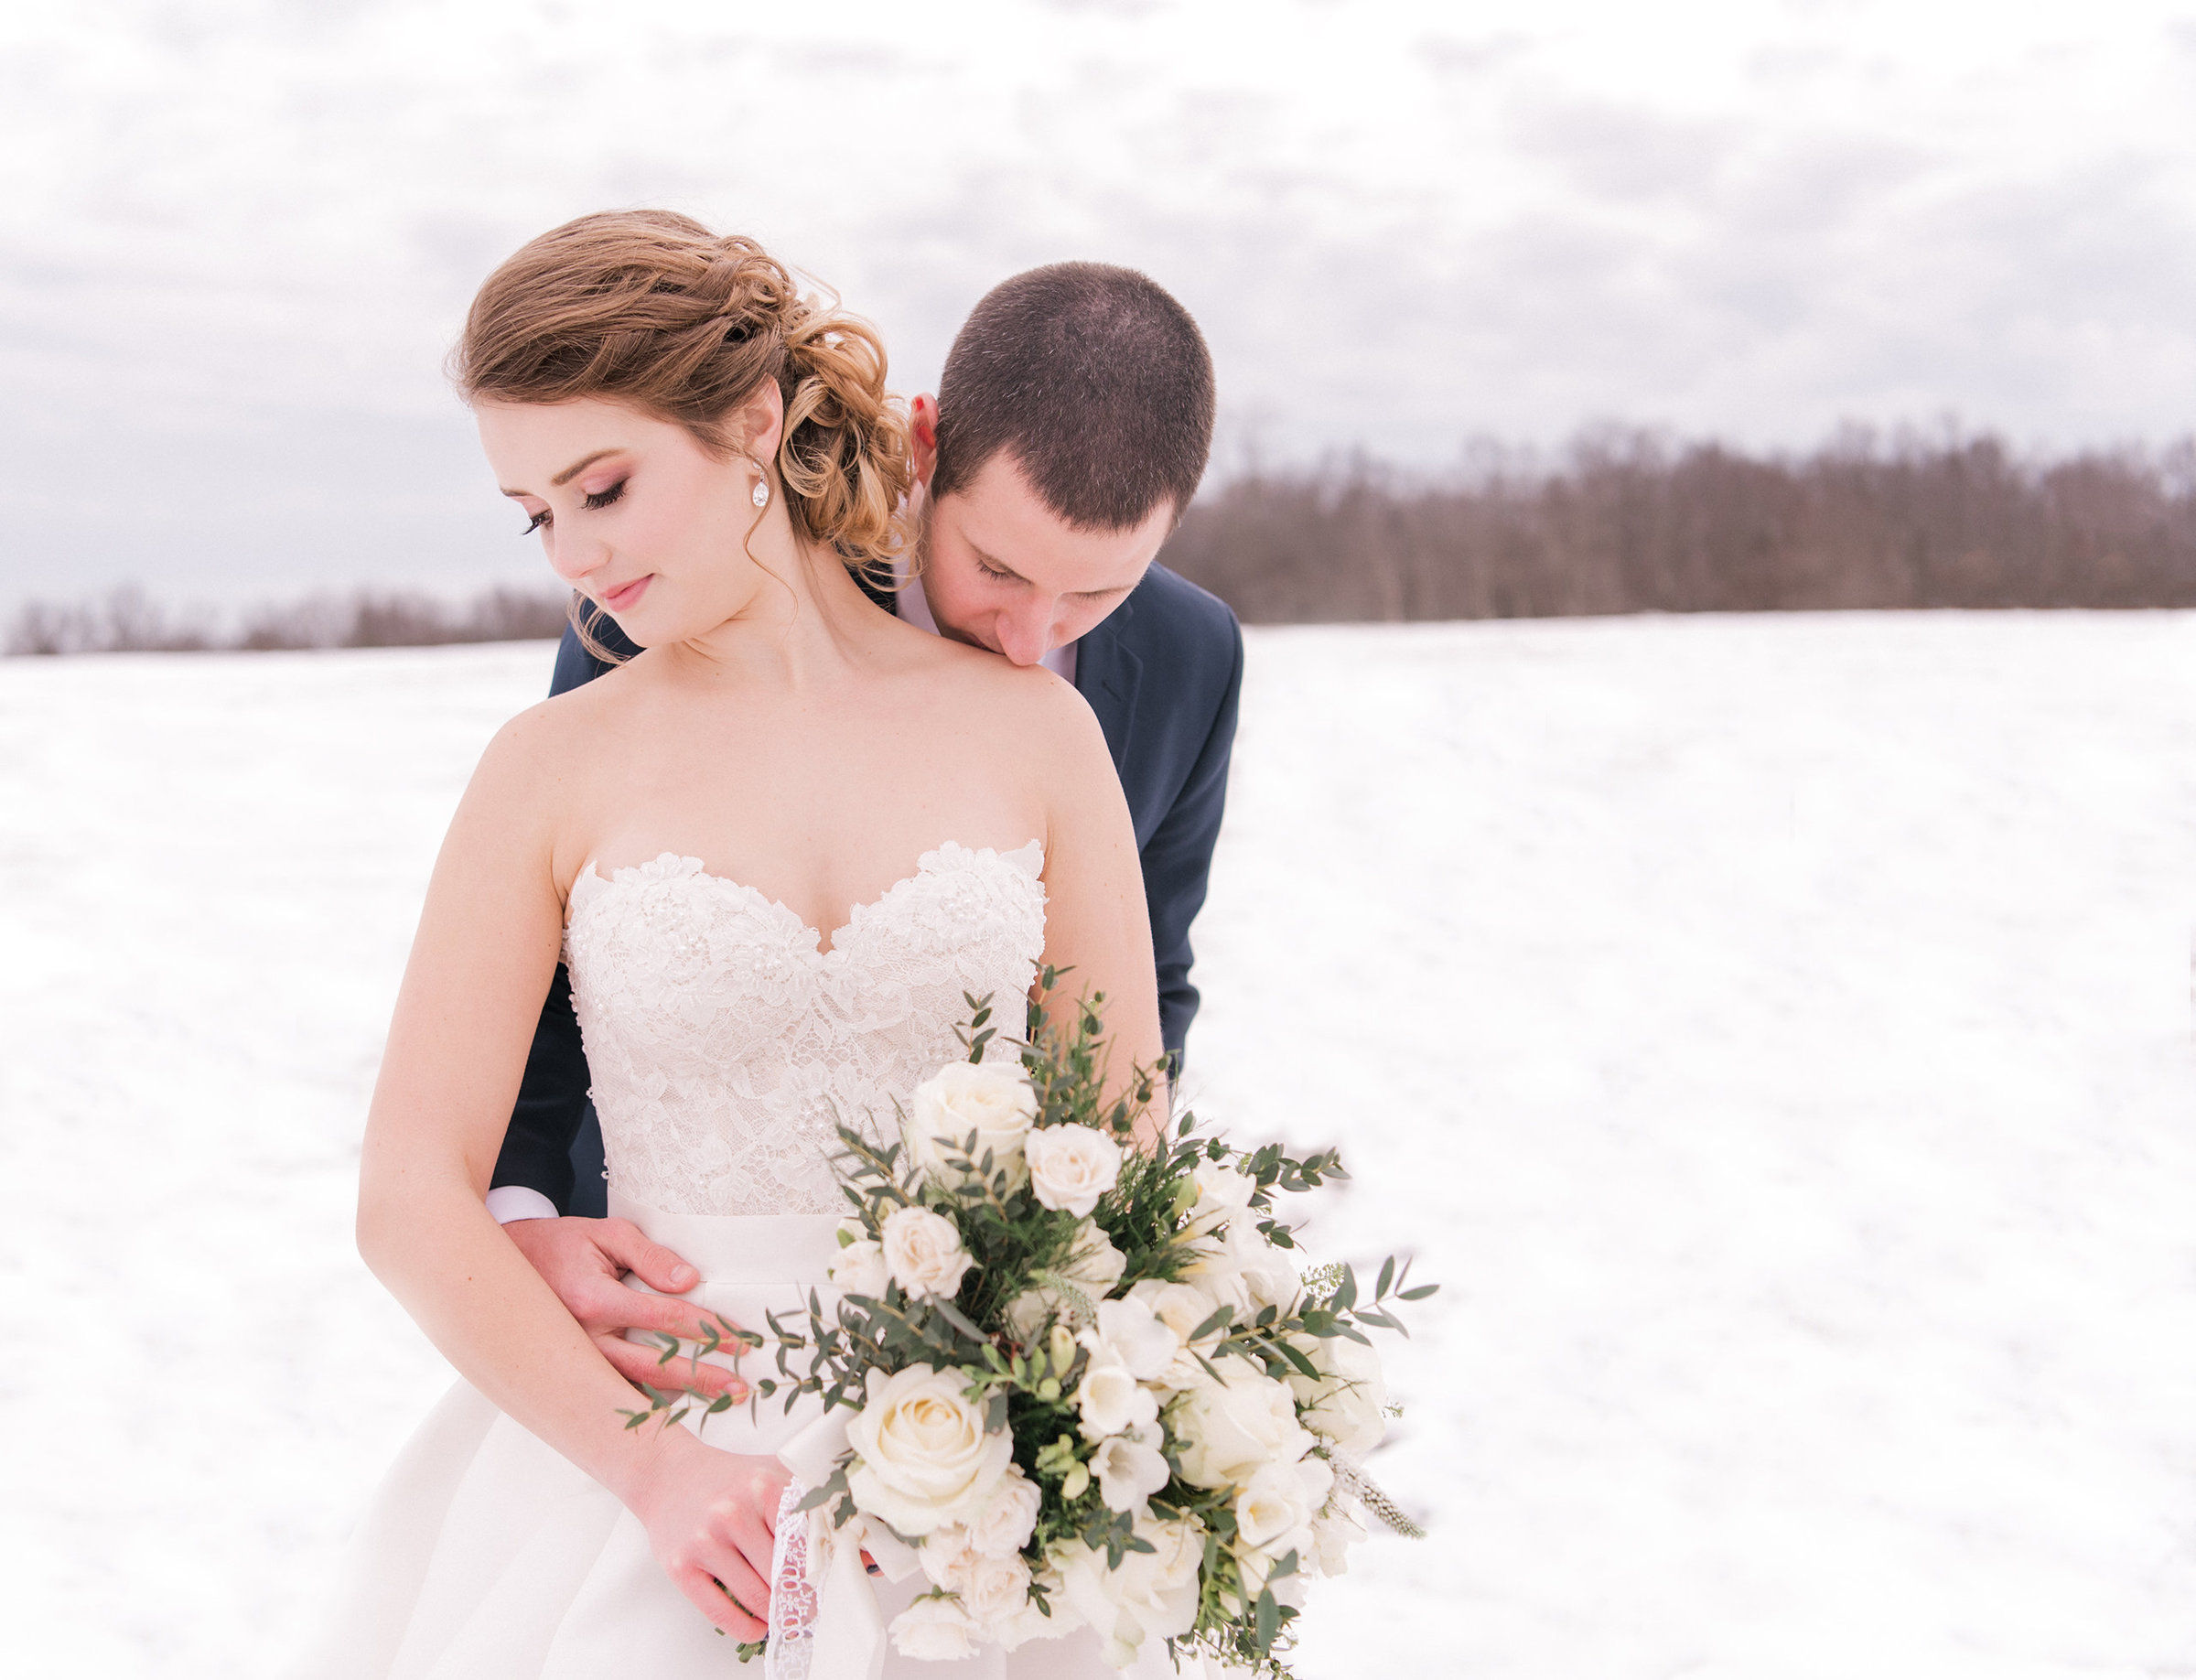 wedding photography in winter in hudson valley, new york